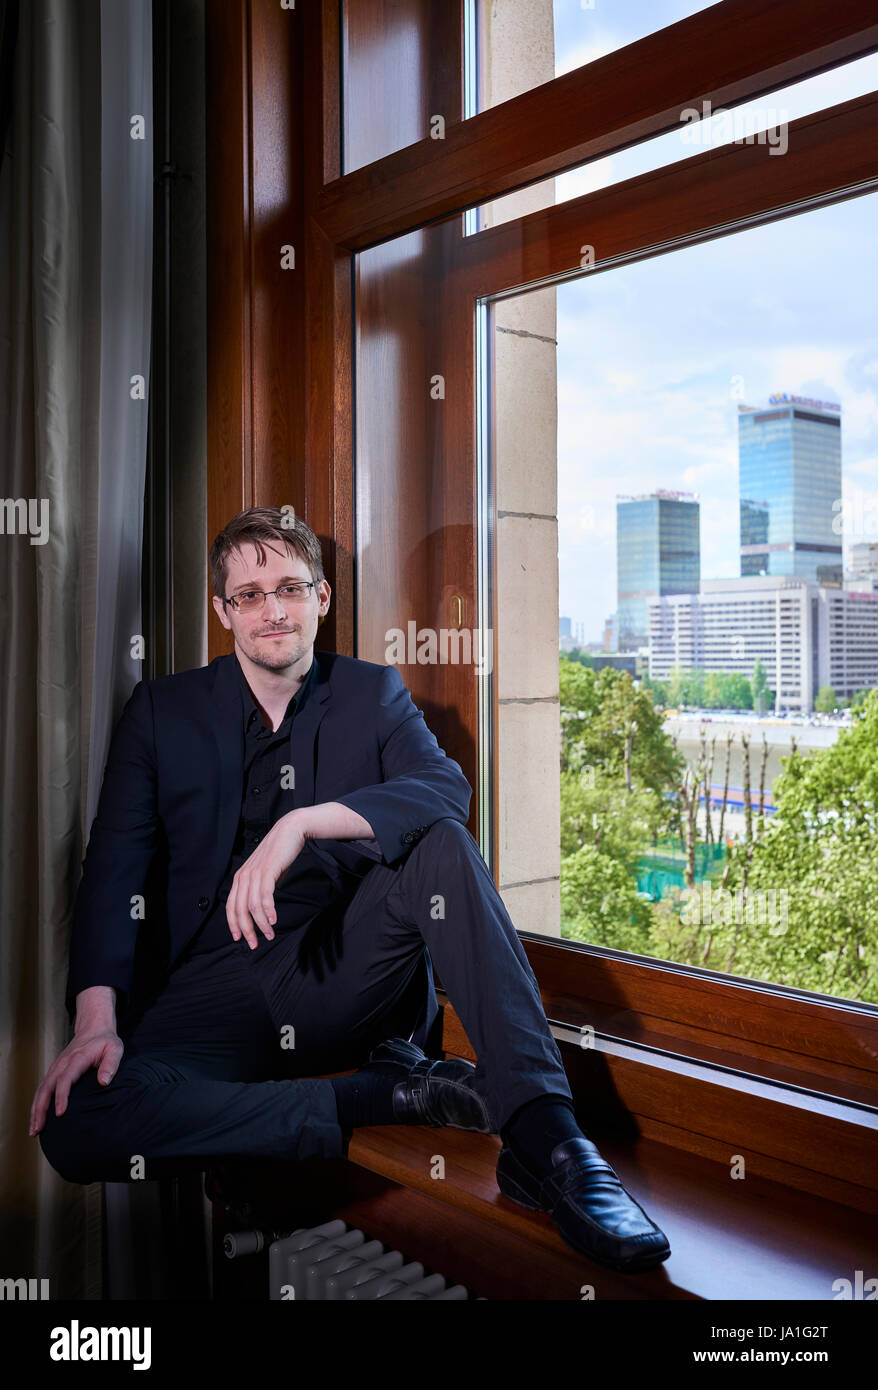 Edward Snowden in exile life in Moscow for exclusive interview with Kyodo News Japan - Stock Image